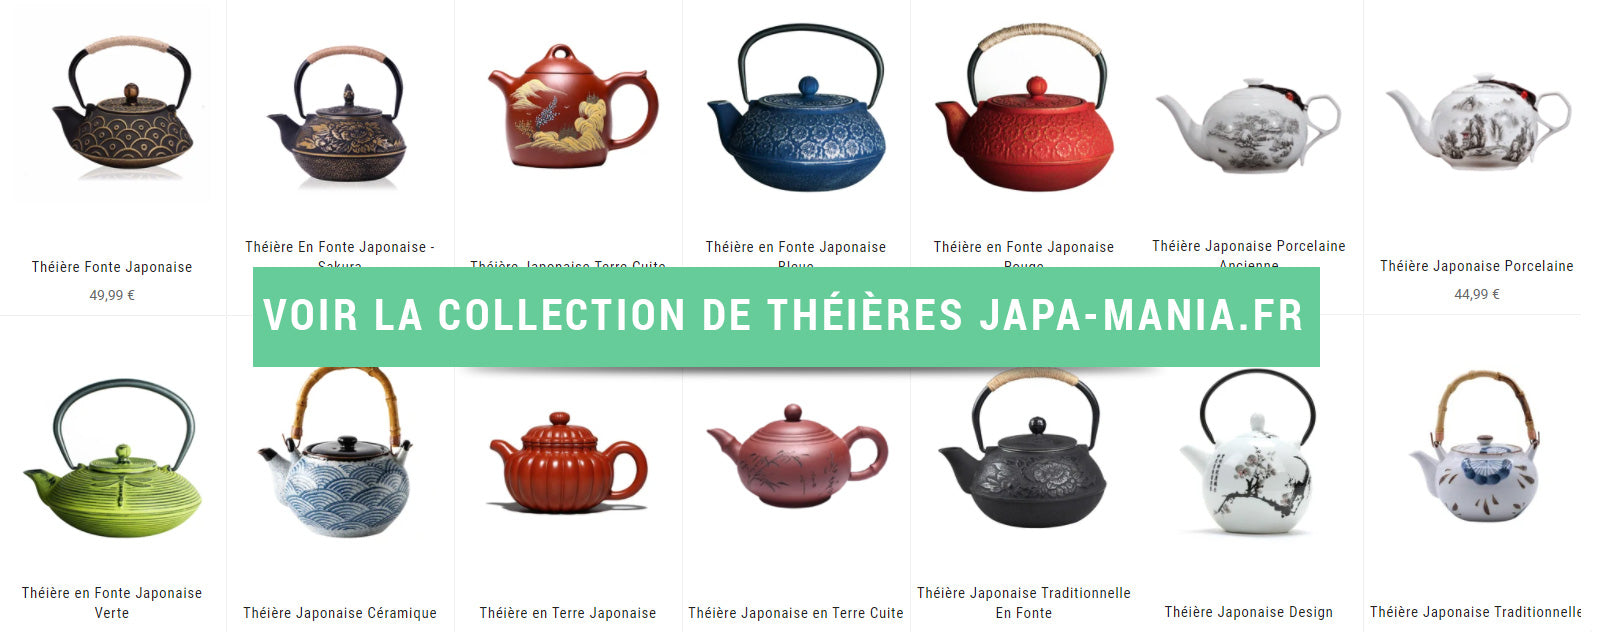 Collection Théières Japonaises en Fonte